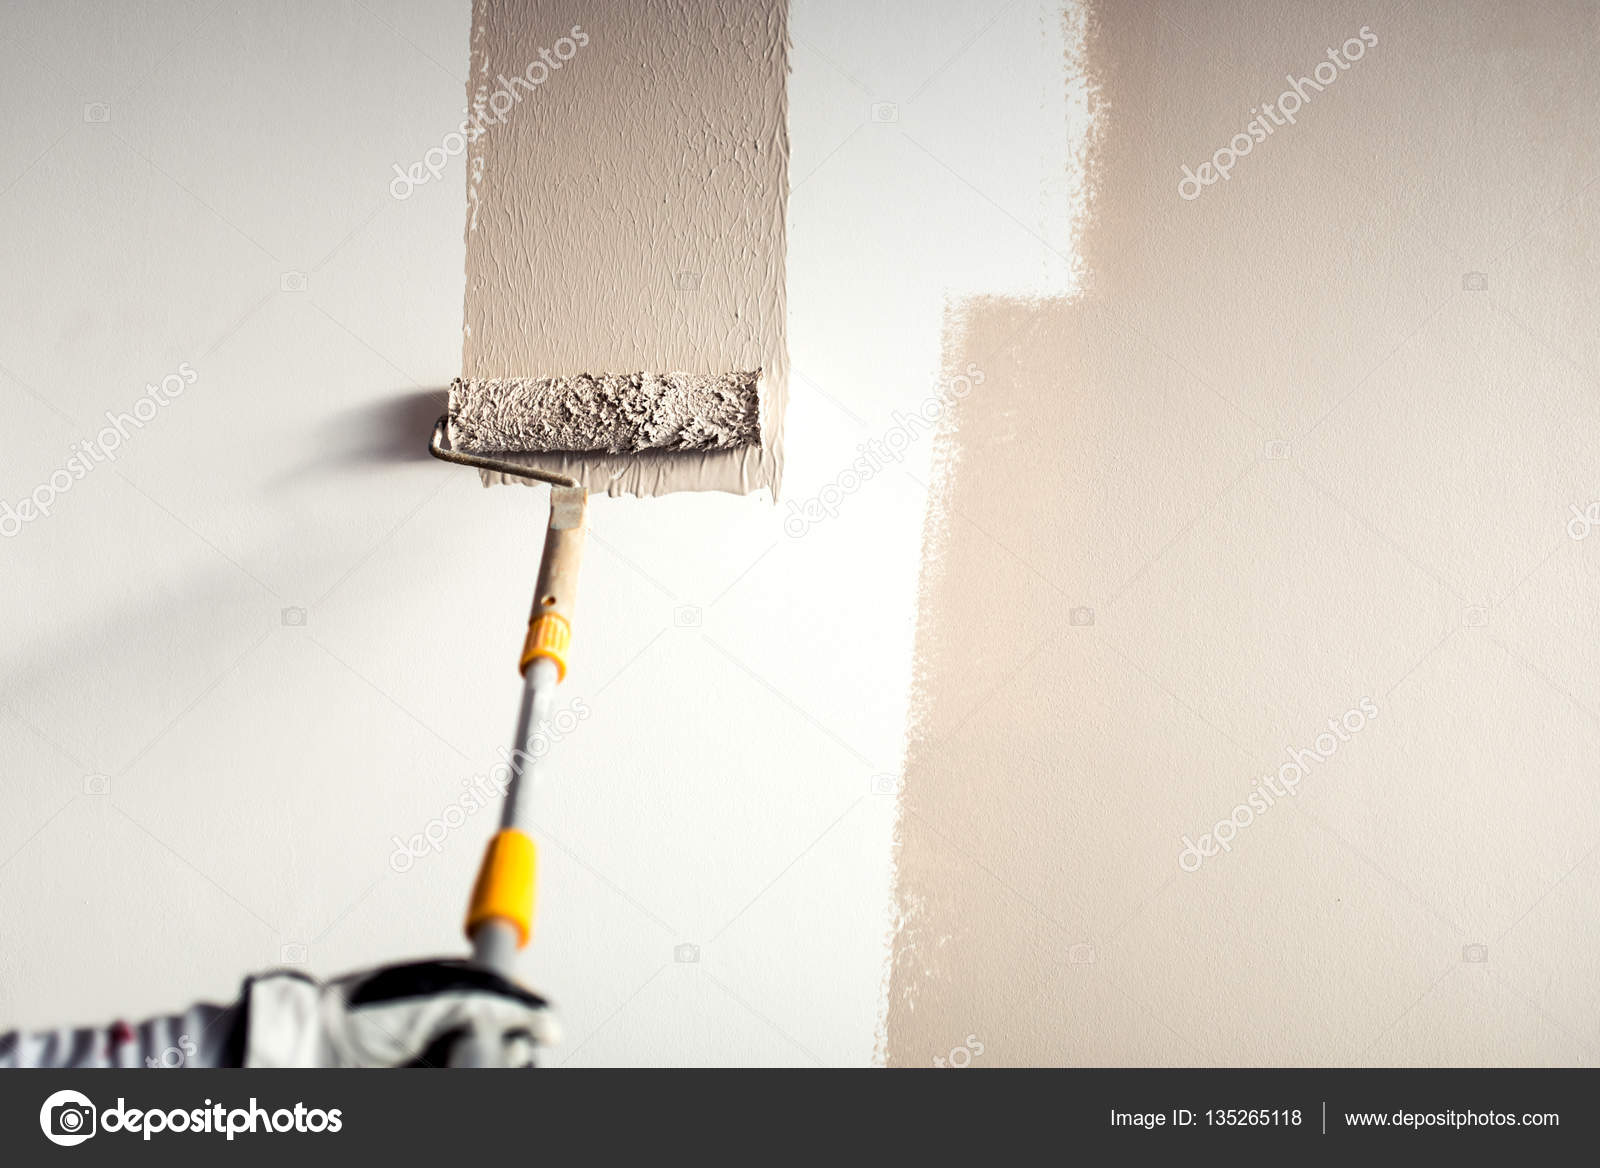 Delightful Professional Worker Plastering A Wall, Painting With Paint Brush Decoration  On Interior Walls U2014 Stock